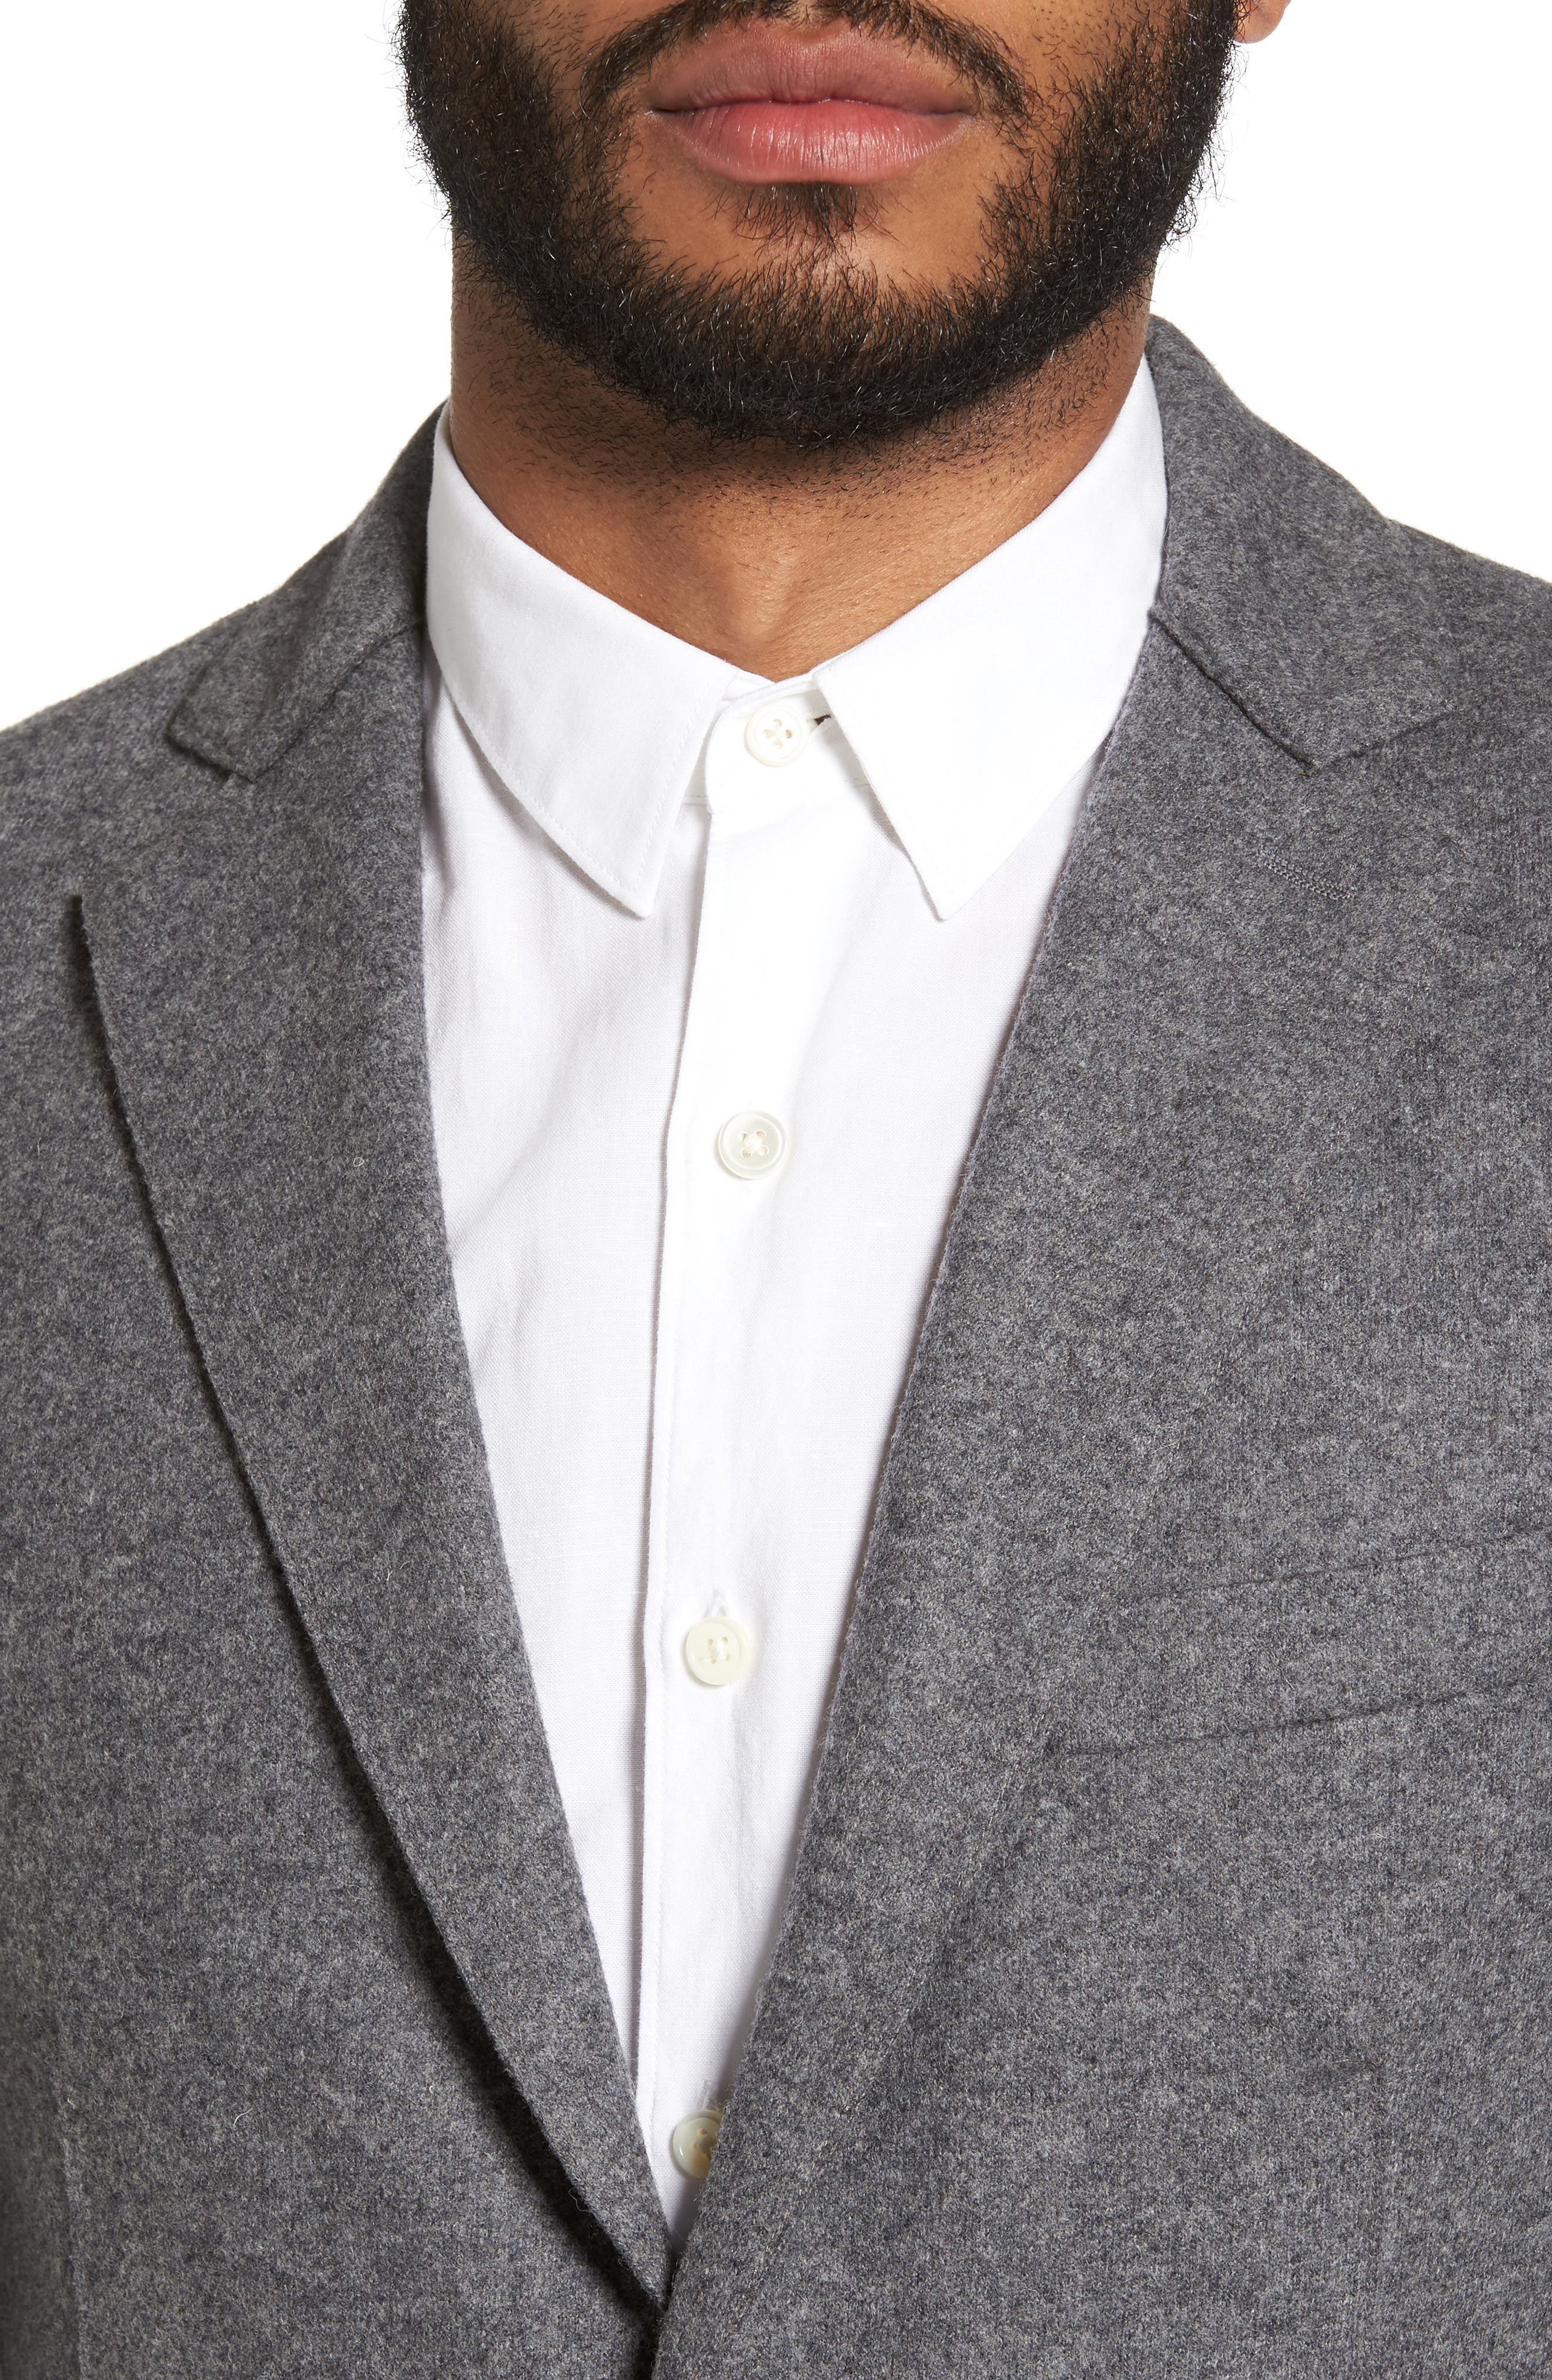 Wool Blend Blazer,                             Alternate thumbnail 4, color,                             SMOKE GREY MELANGE